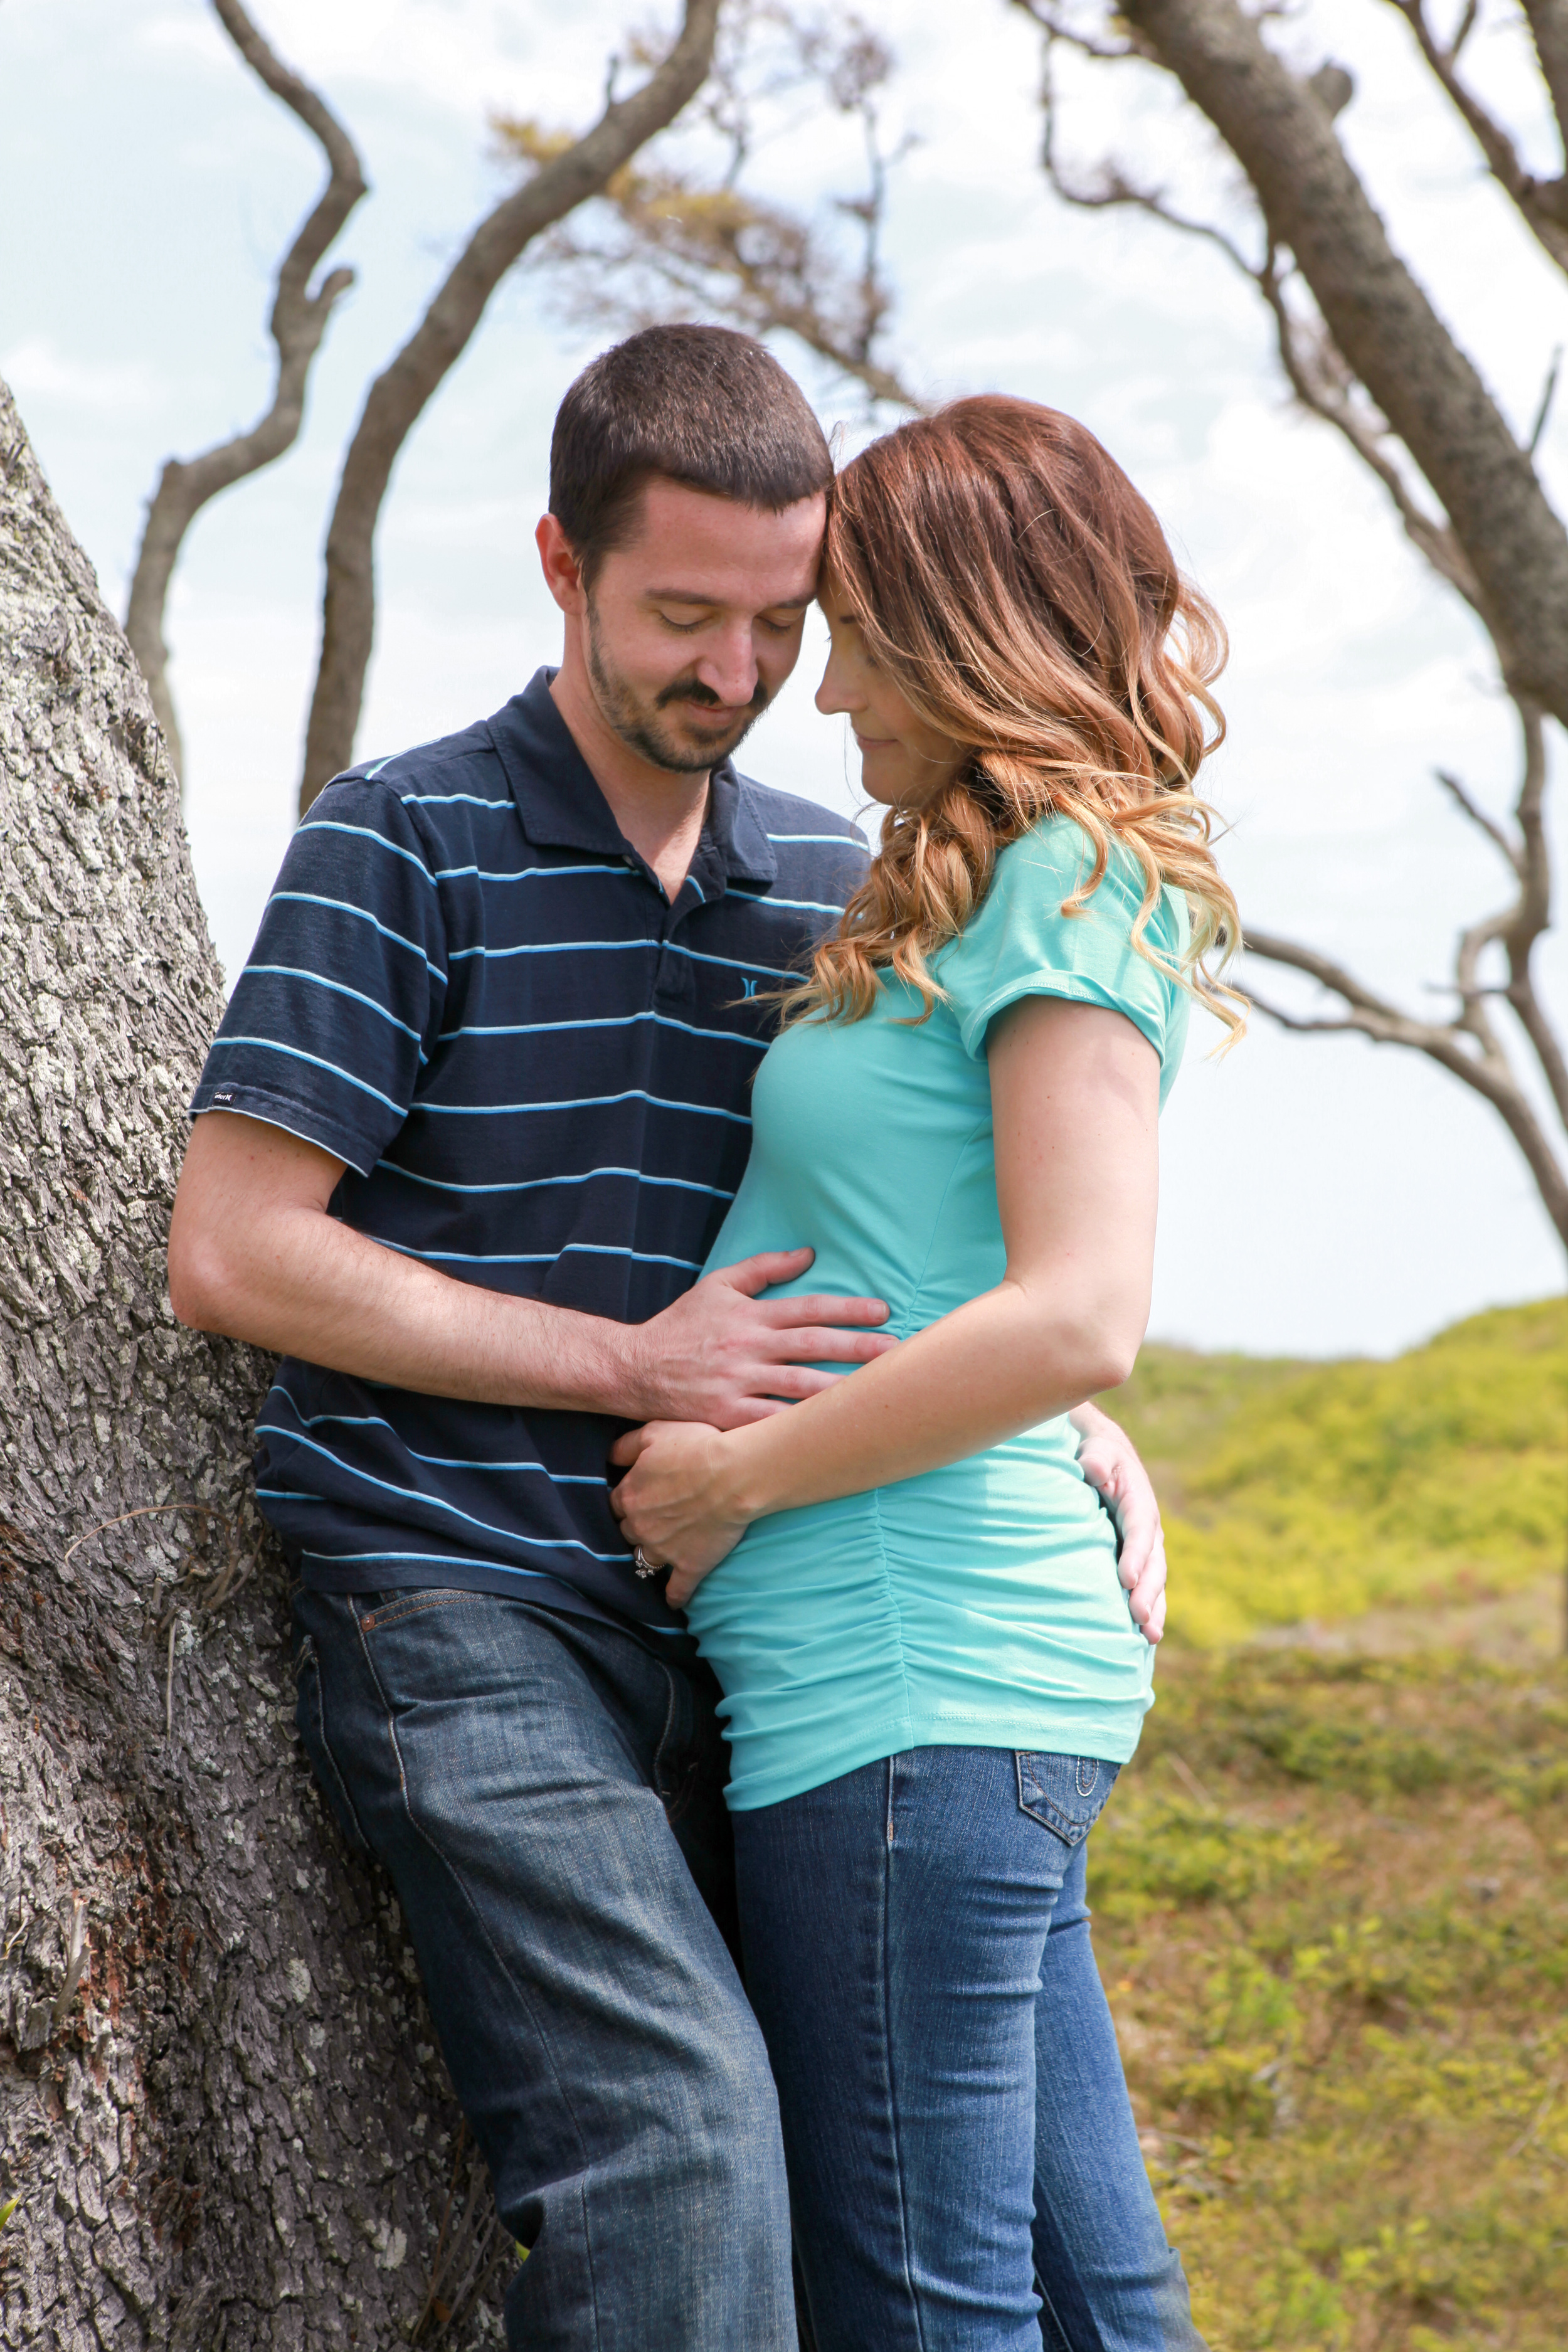 Wilmington_NC_Photographer_Maternity_Fort_fisher_Tiffany_Abruzzo_Photography_3.jpg